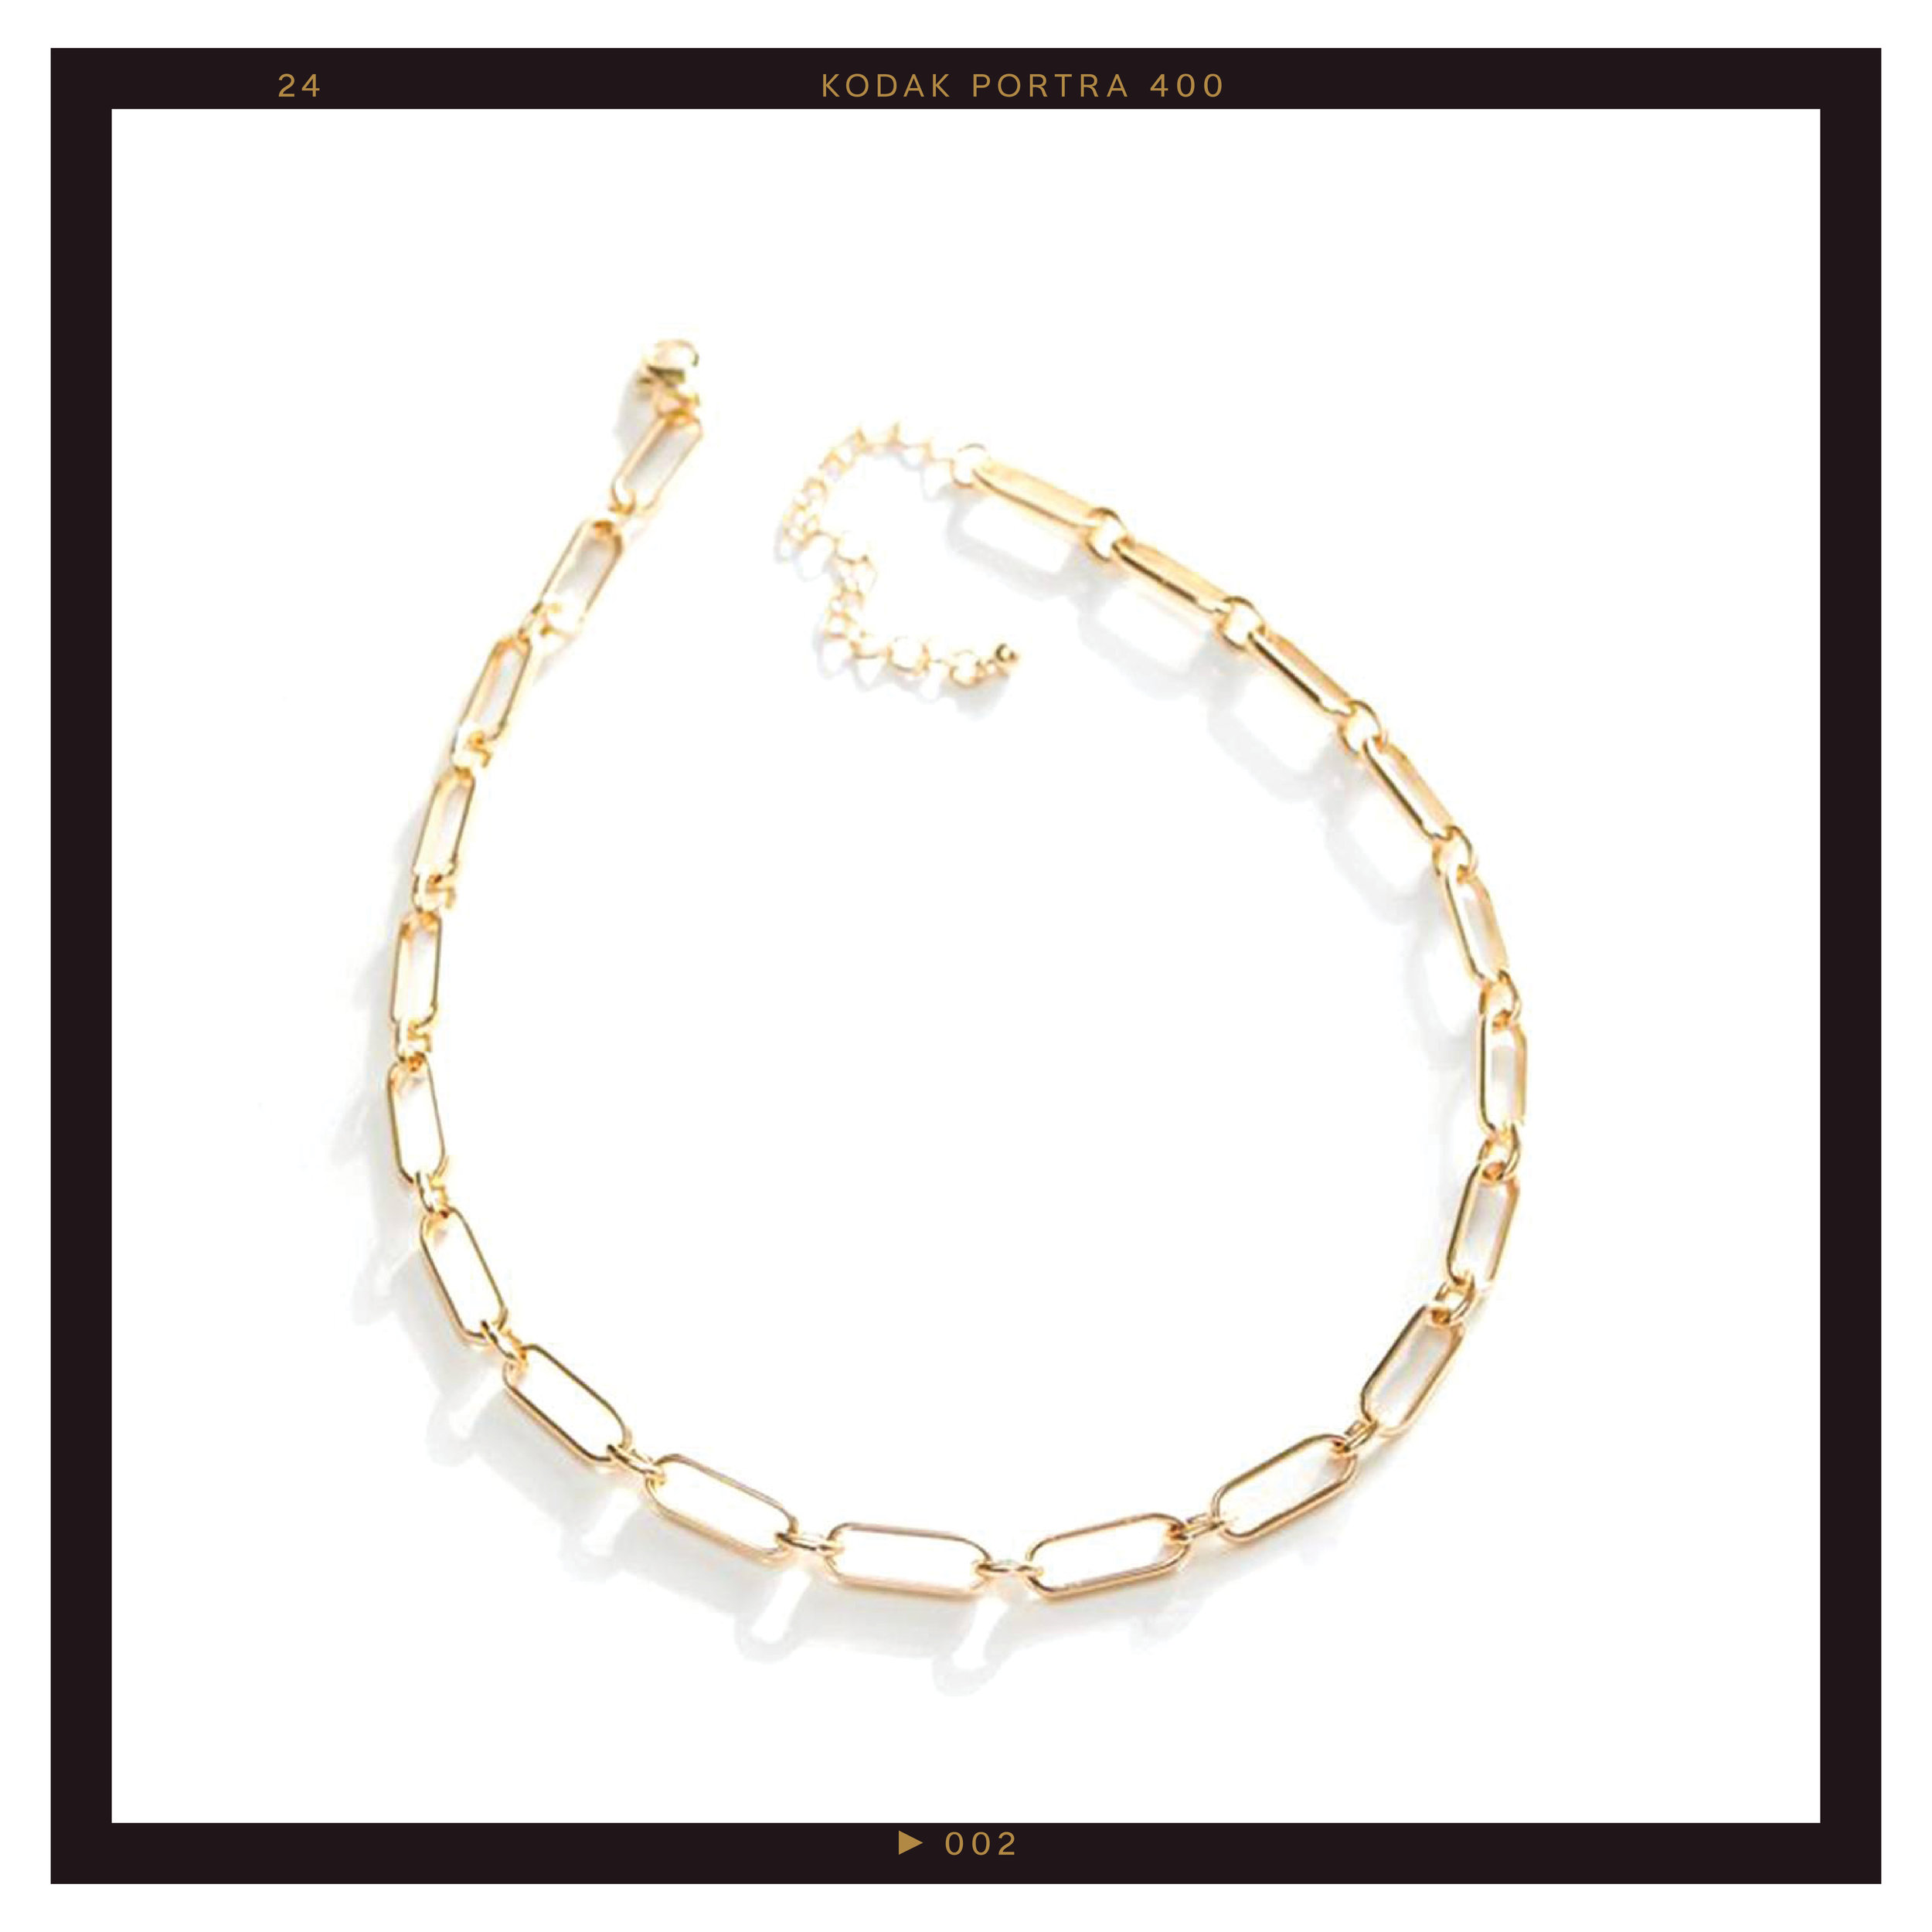 Urban Outfitters Harlow Link Chain Necklace ($20)